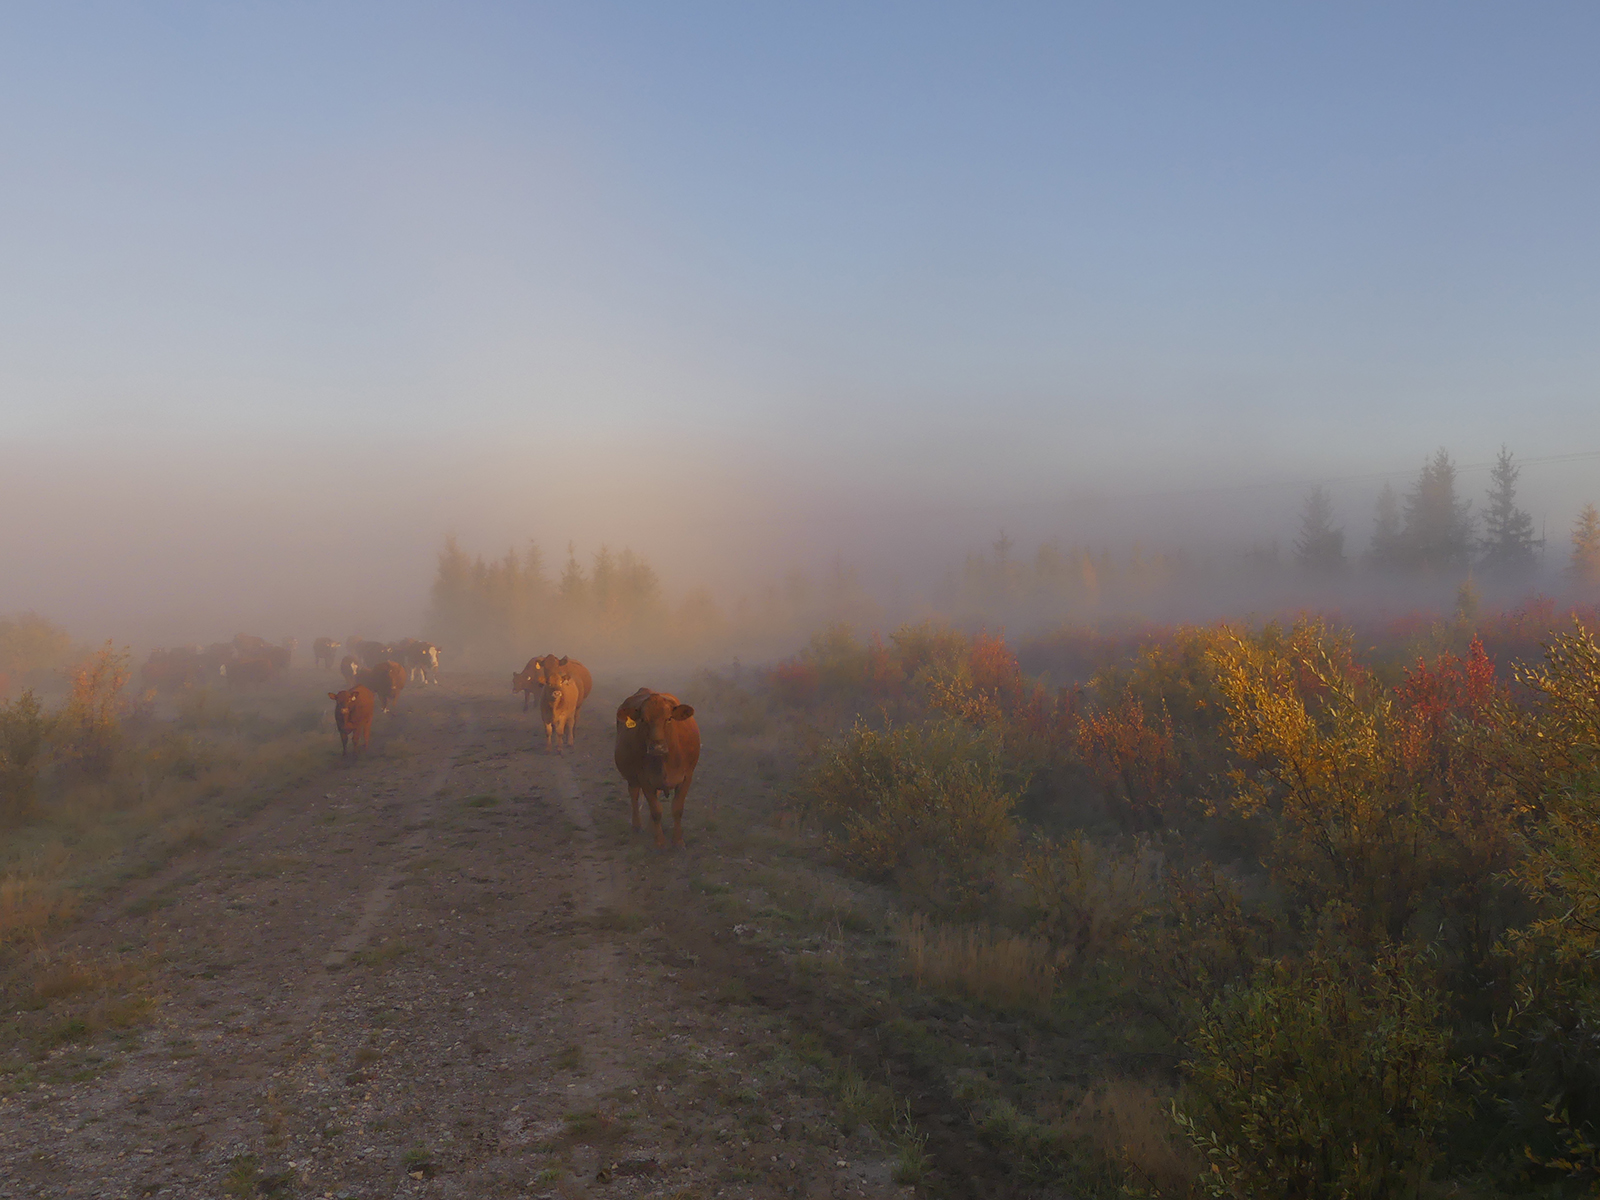 misty morning cattle walking on path alberta